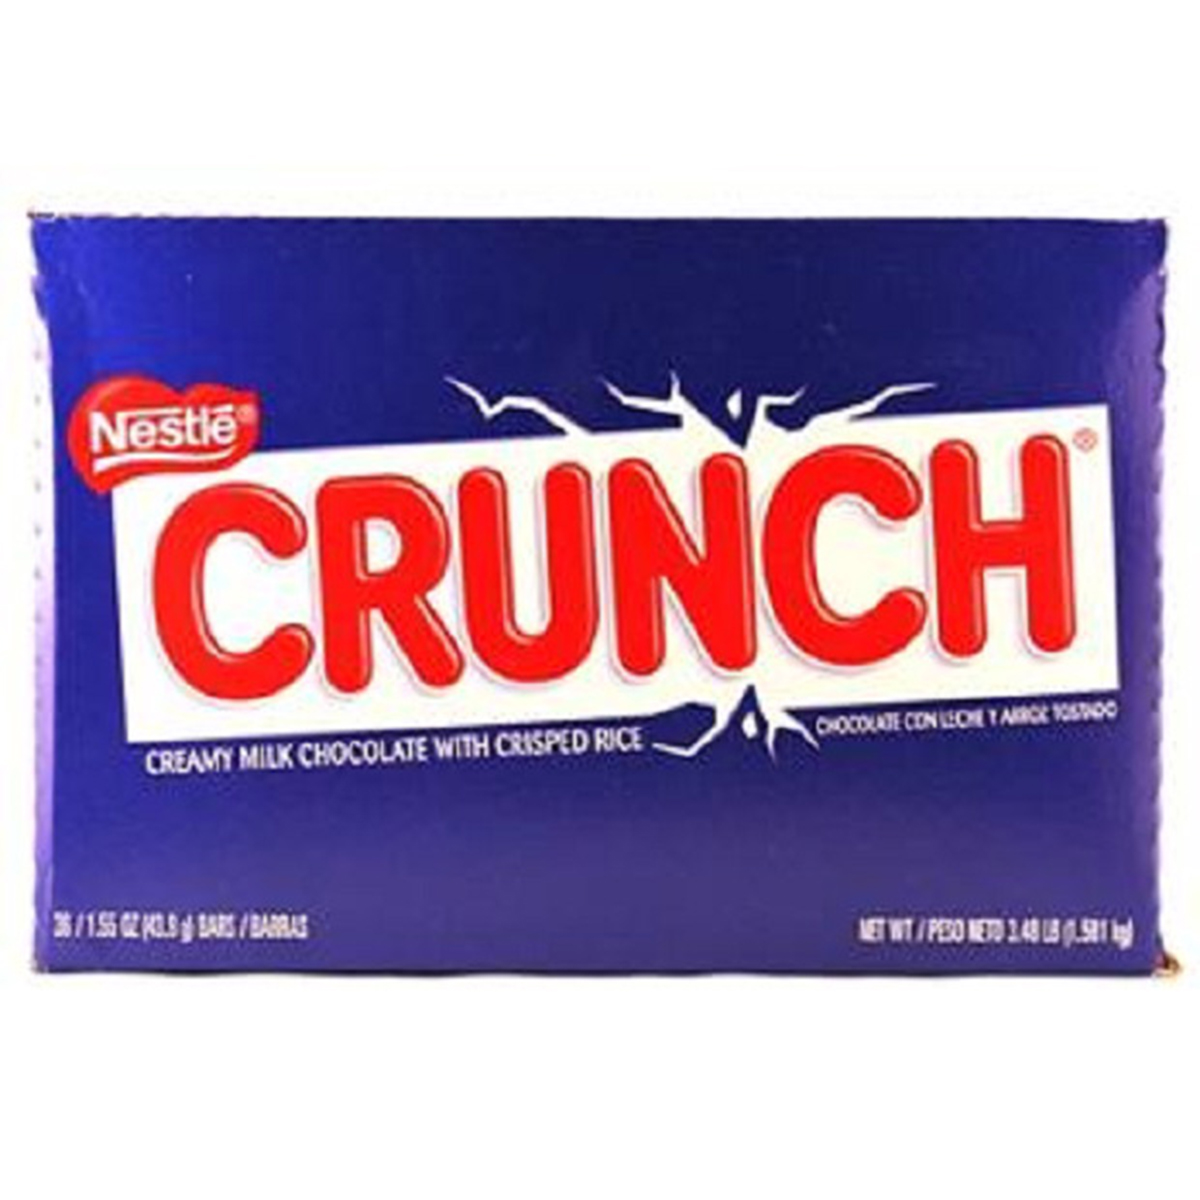 Product Of Nestle Crunch, Crisp Chocolate Wafer Bar, Count 36 (1.55 oz) - Chocolate Candy / Grab Varieties & Flavors